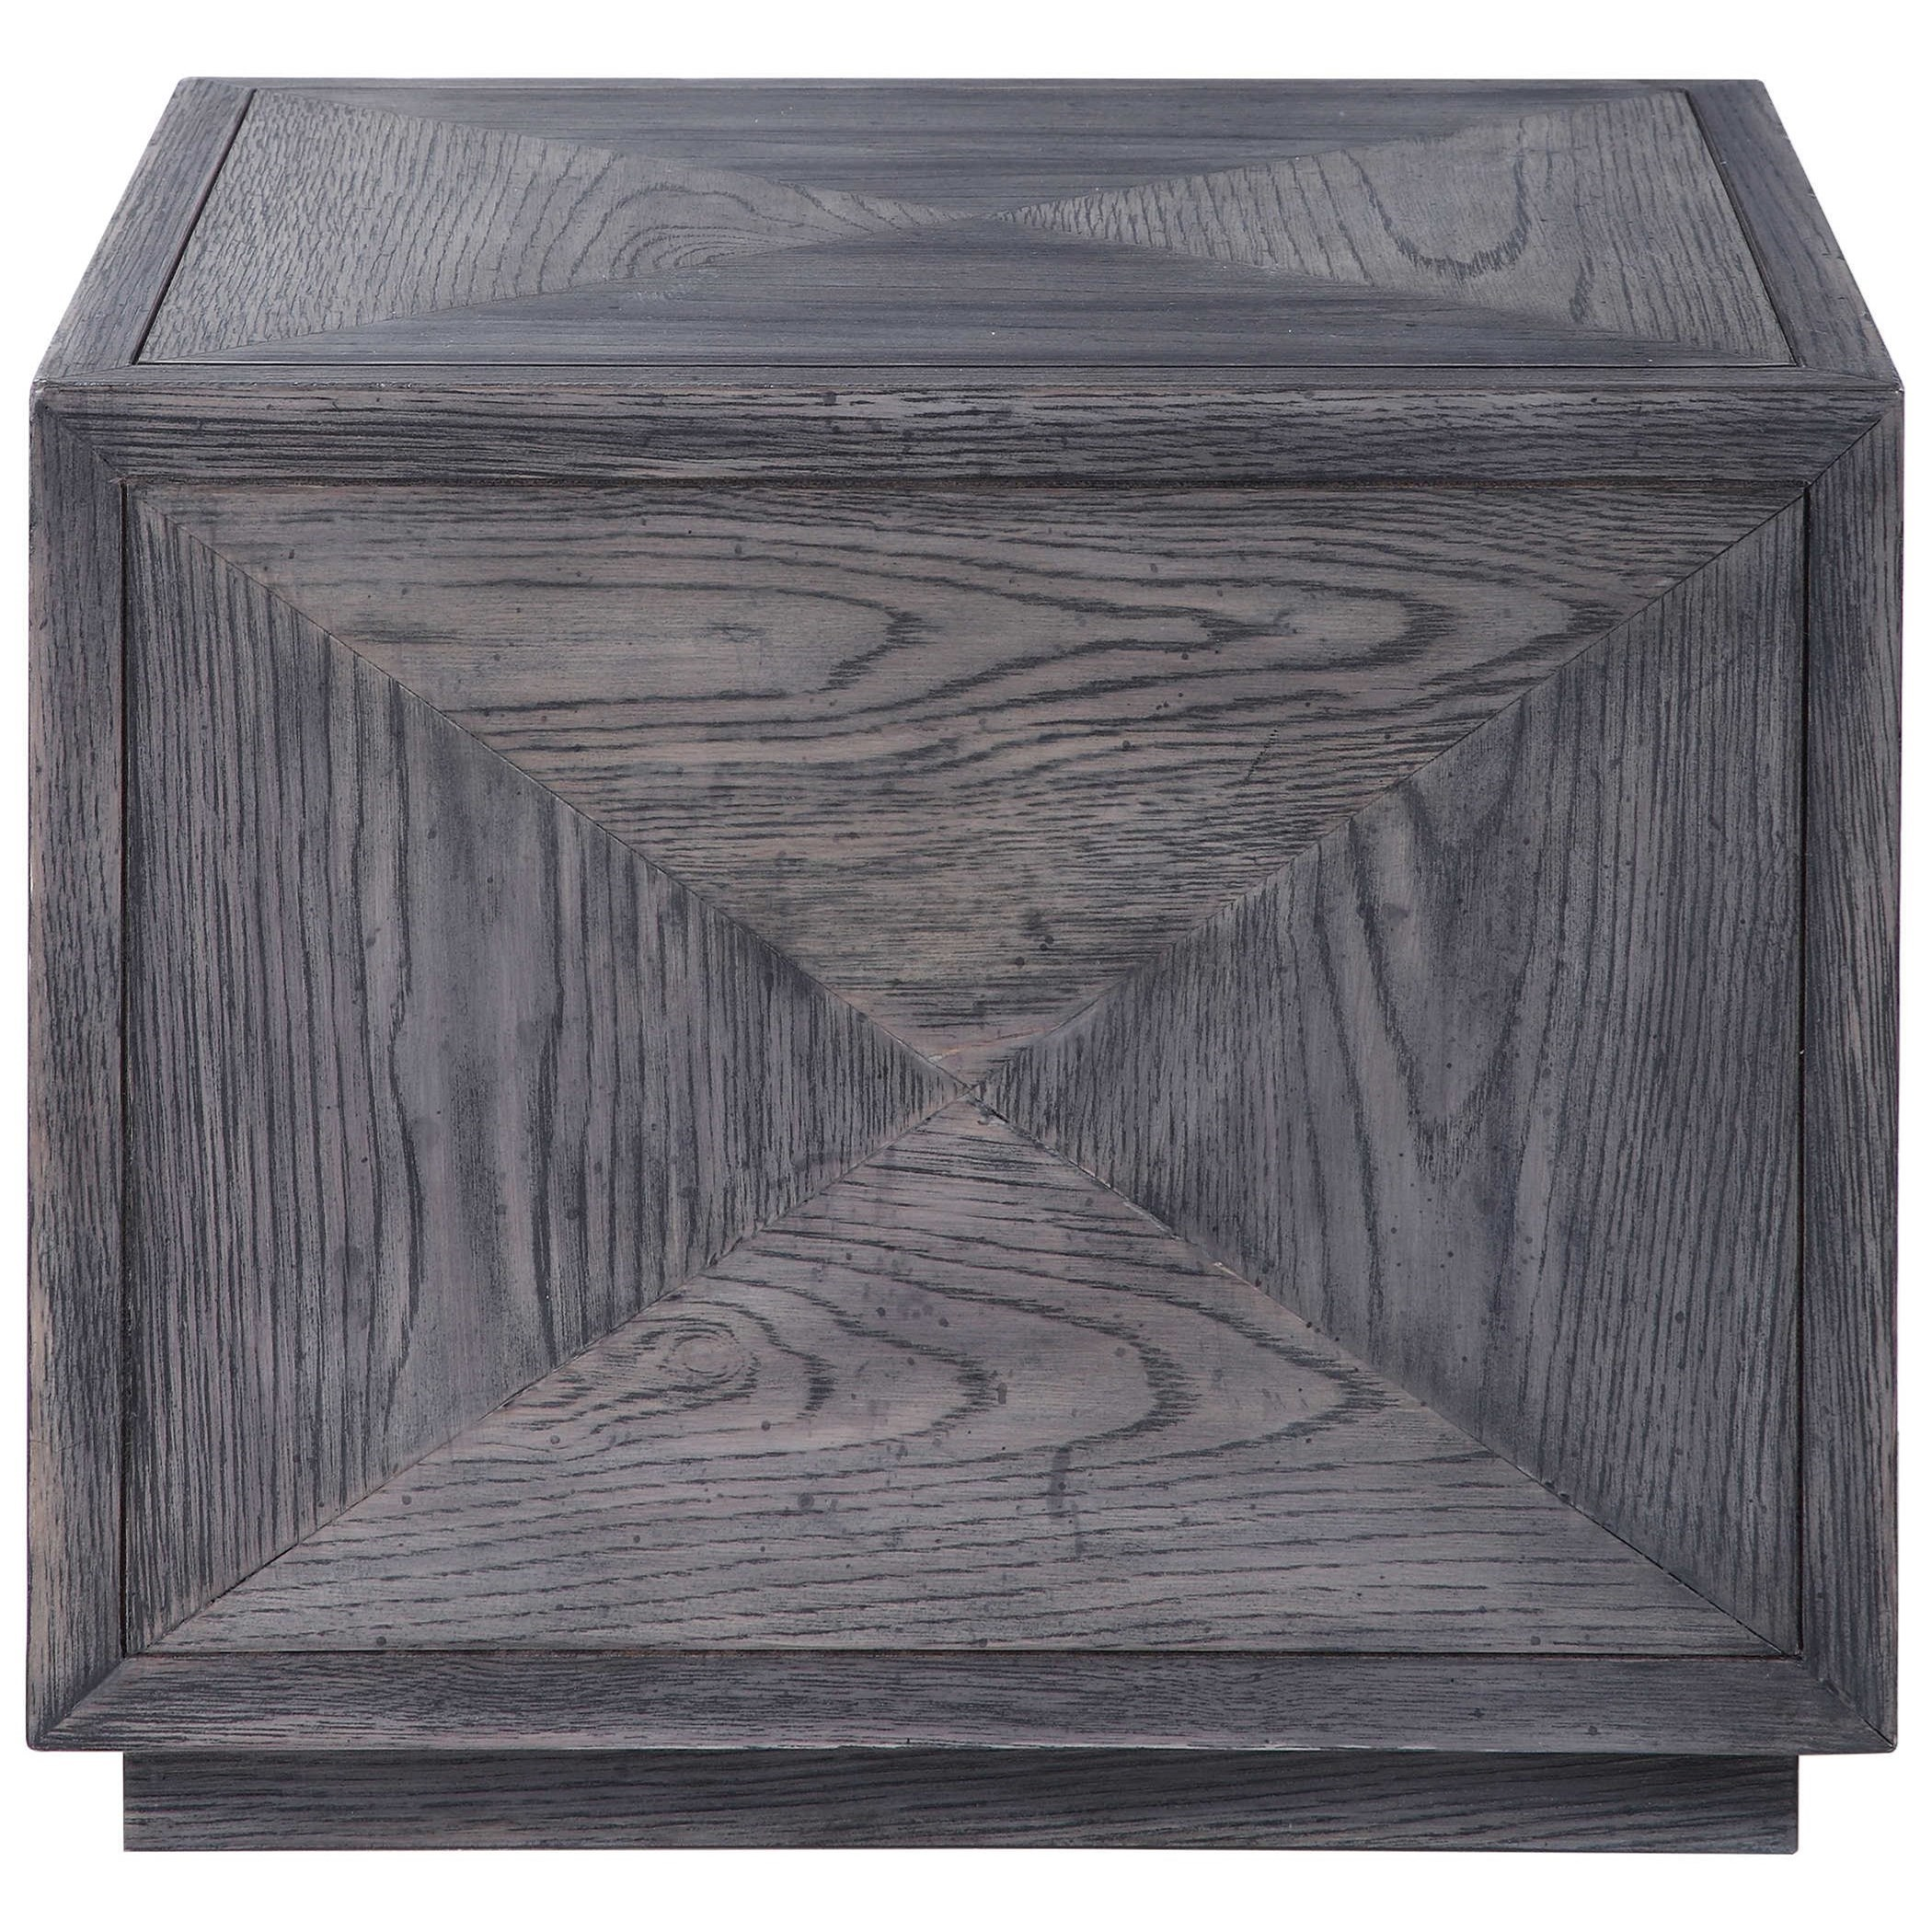 Accent Furniture - Occasional Tables Curtley Wooden Cube Table by Uttermost at Dream Home Interiors